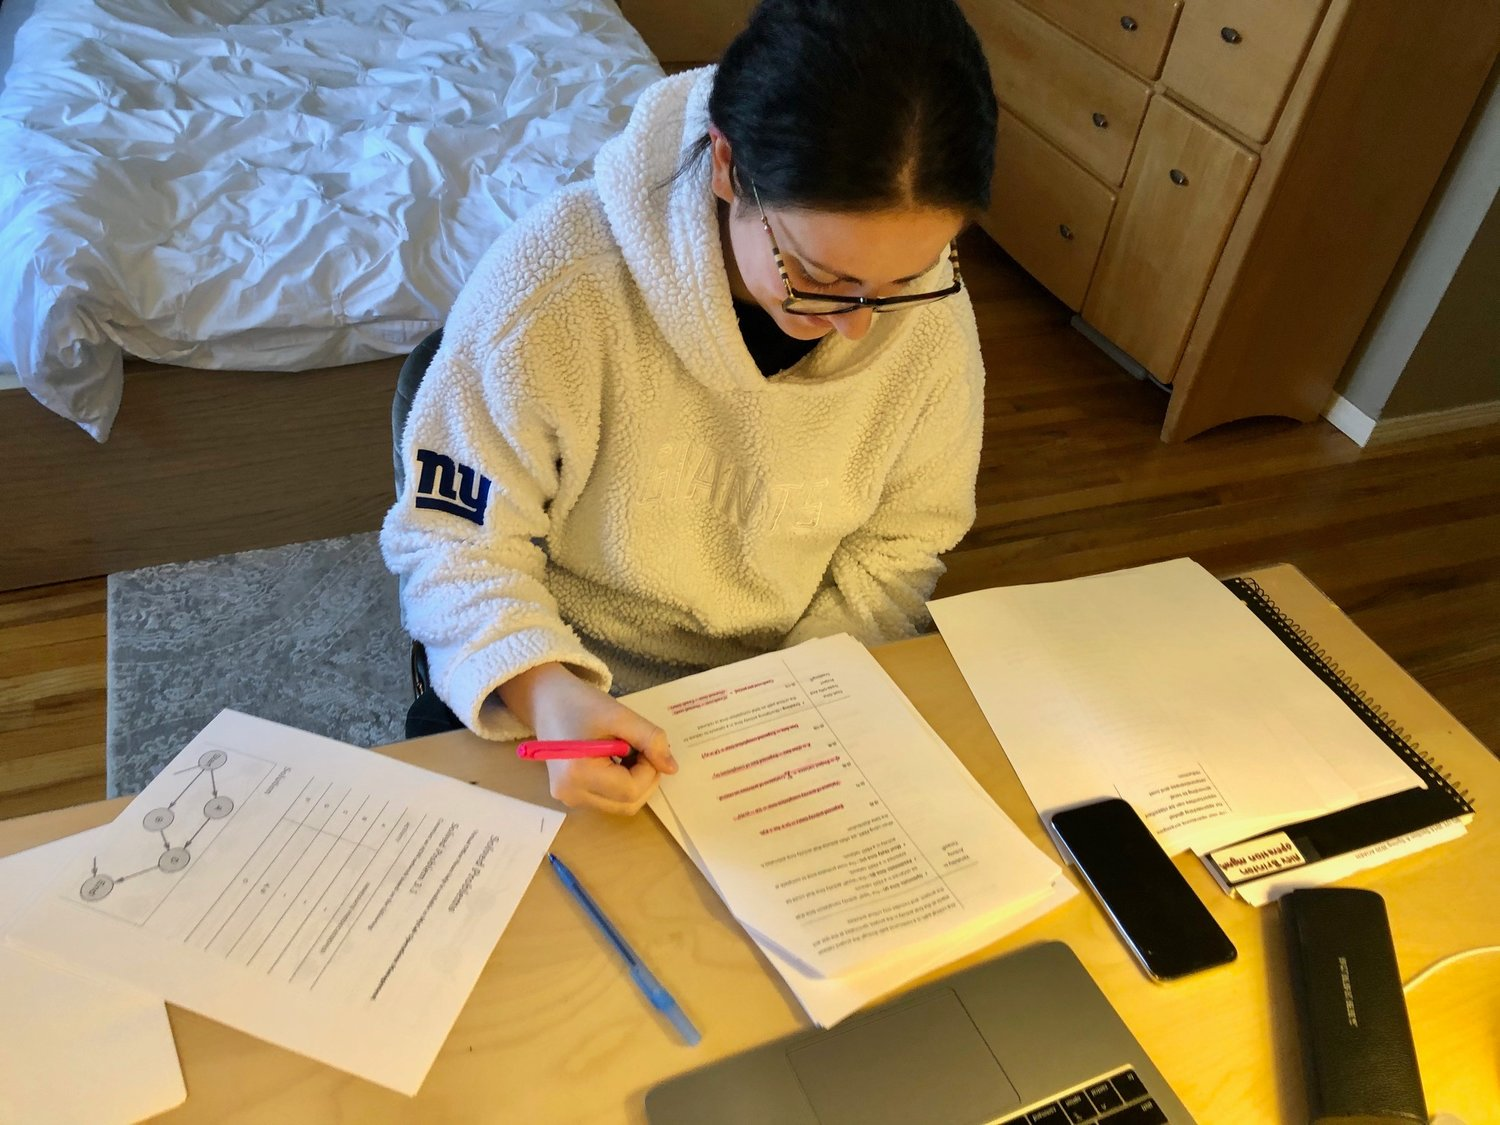 Most college students are not returning for classes this semester and are learning virtually from home. Above, Alexandra Brinton, of Merrick, a New York University sophomore and daughter of Herald Executive Editor Scott Brinton, hard at work studying on April Fool's Day.